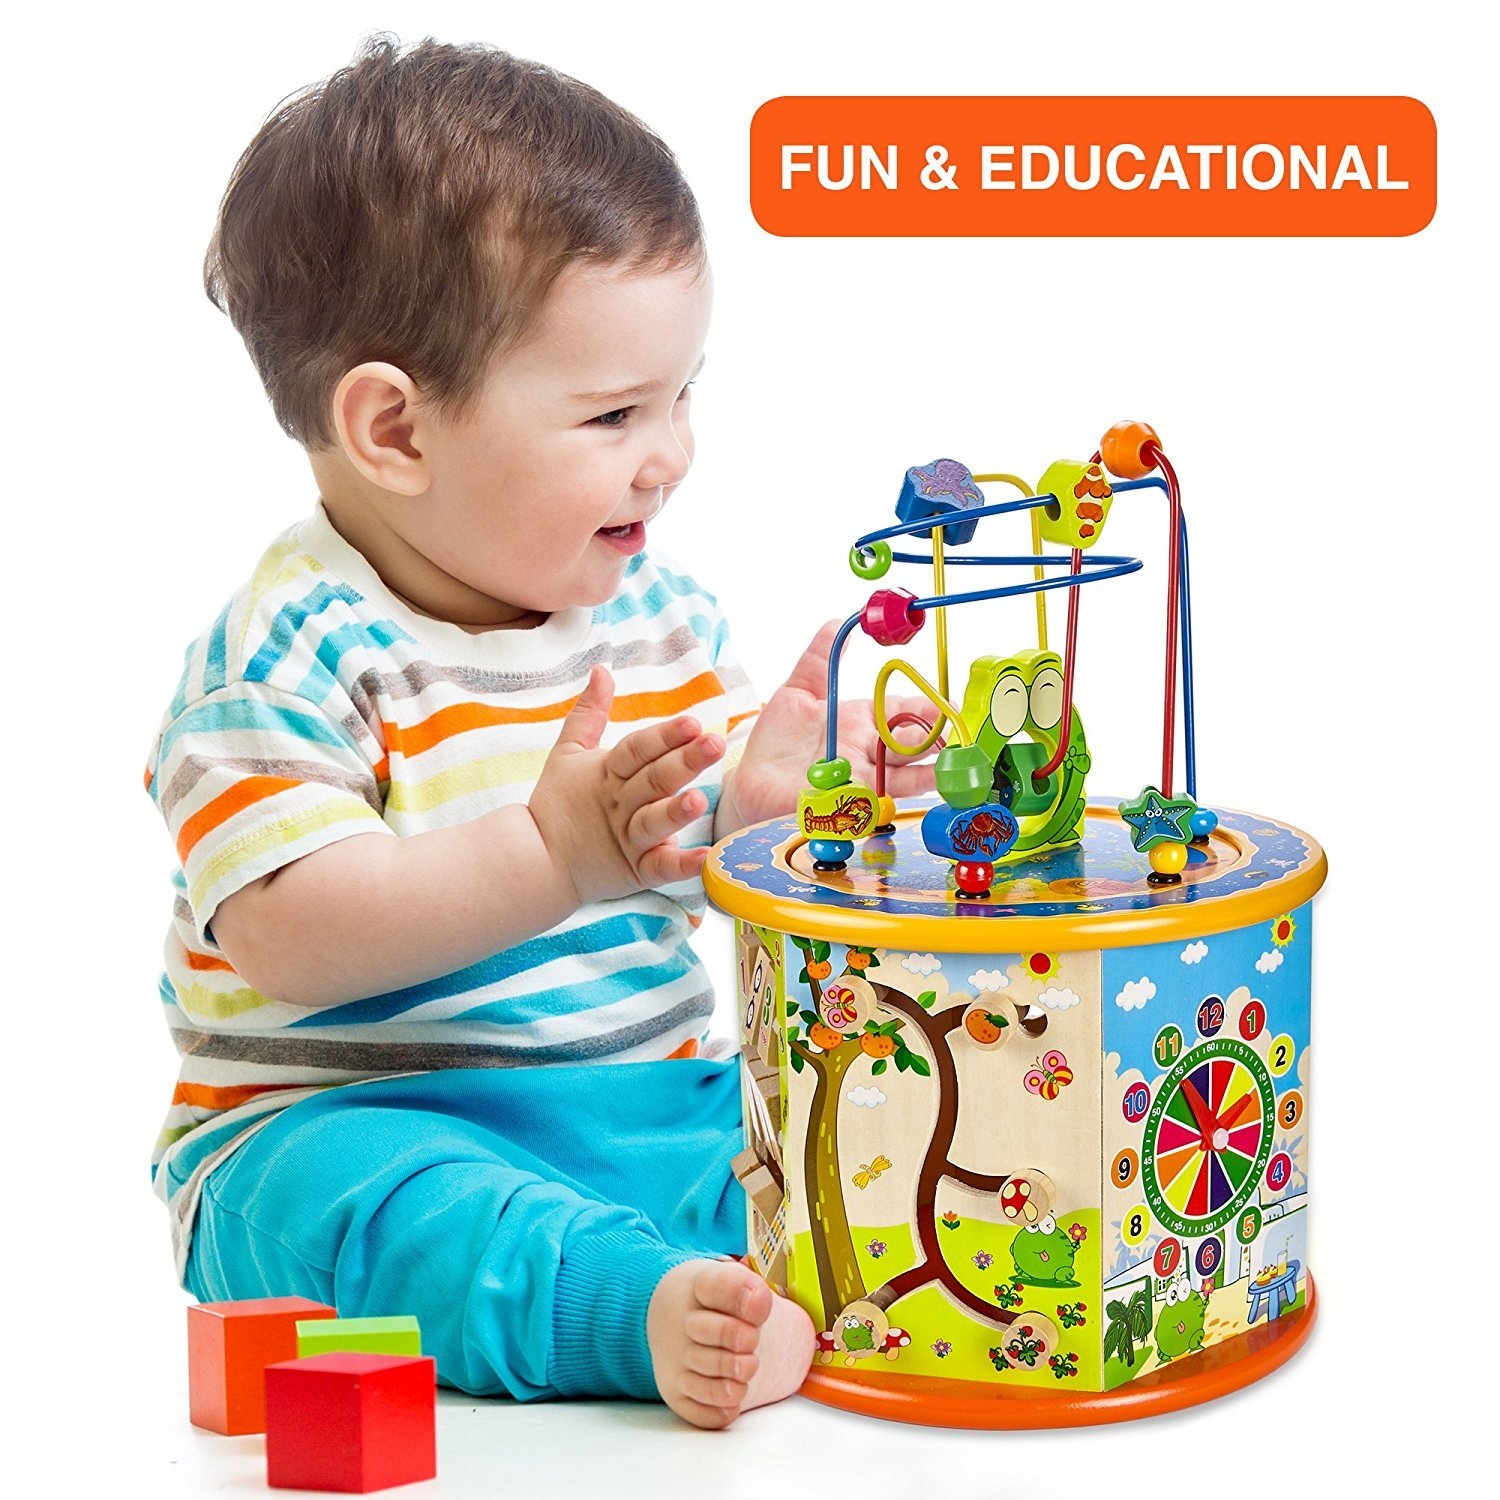 Gleeporte 8-in-1 - Wooden Activity Play Cube | Includes Tic Tac Toe Game | Multi-Function, Deluxe, Learning Multi Sensory Educational Toy for Toddler & Kids with Turning Base | Ideal Gift